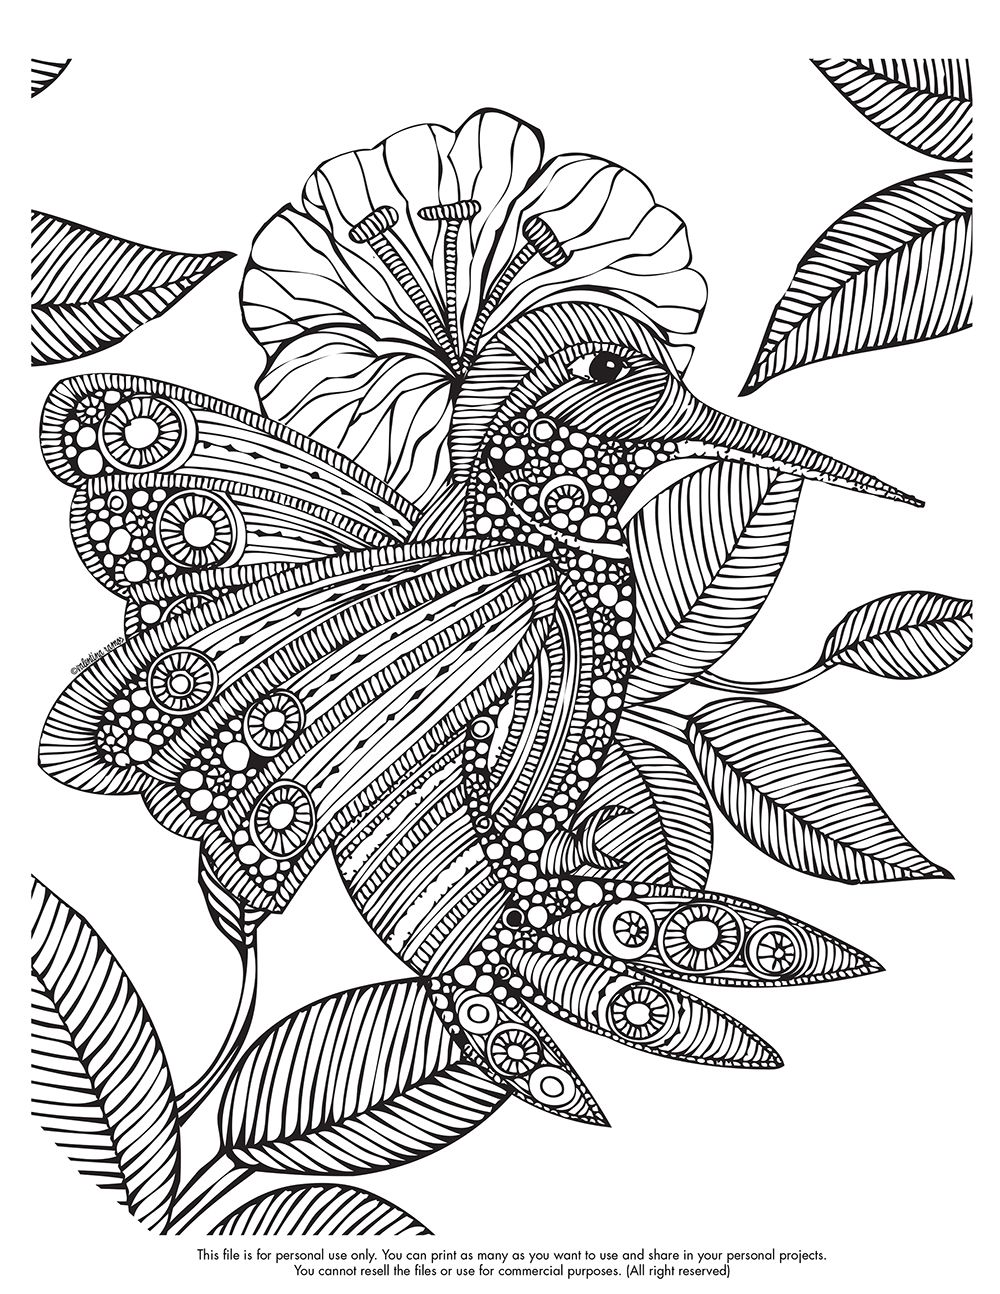 The botany coloring book pdf - Coloring Pages